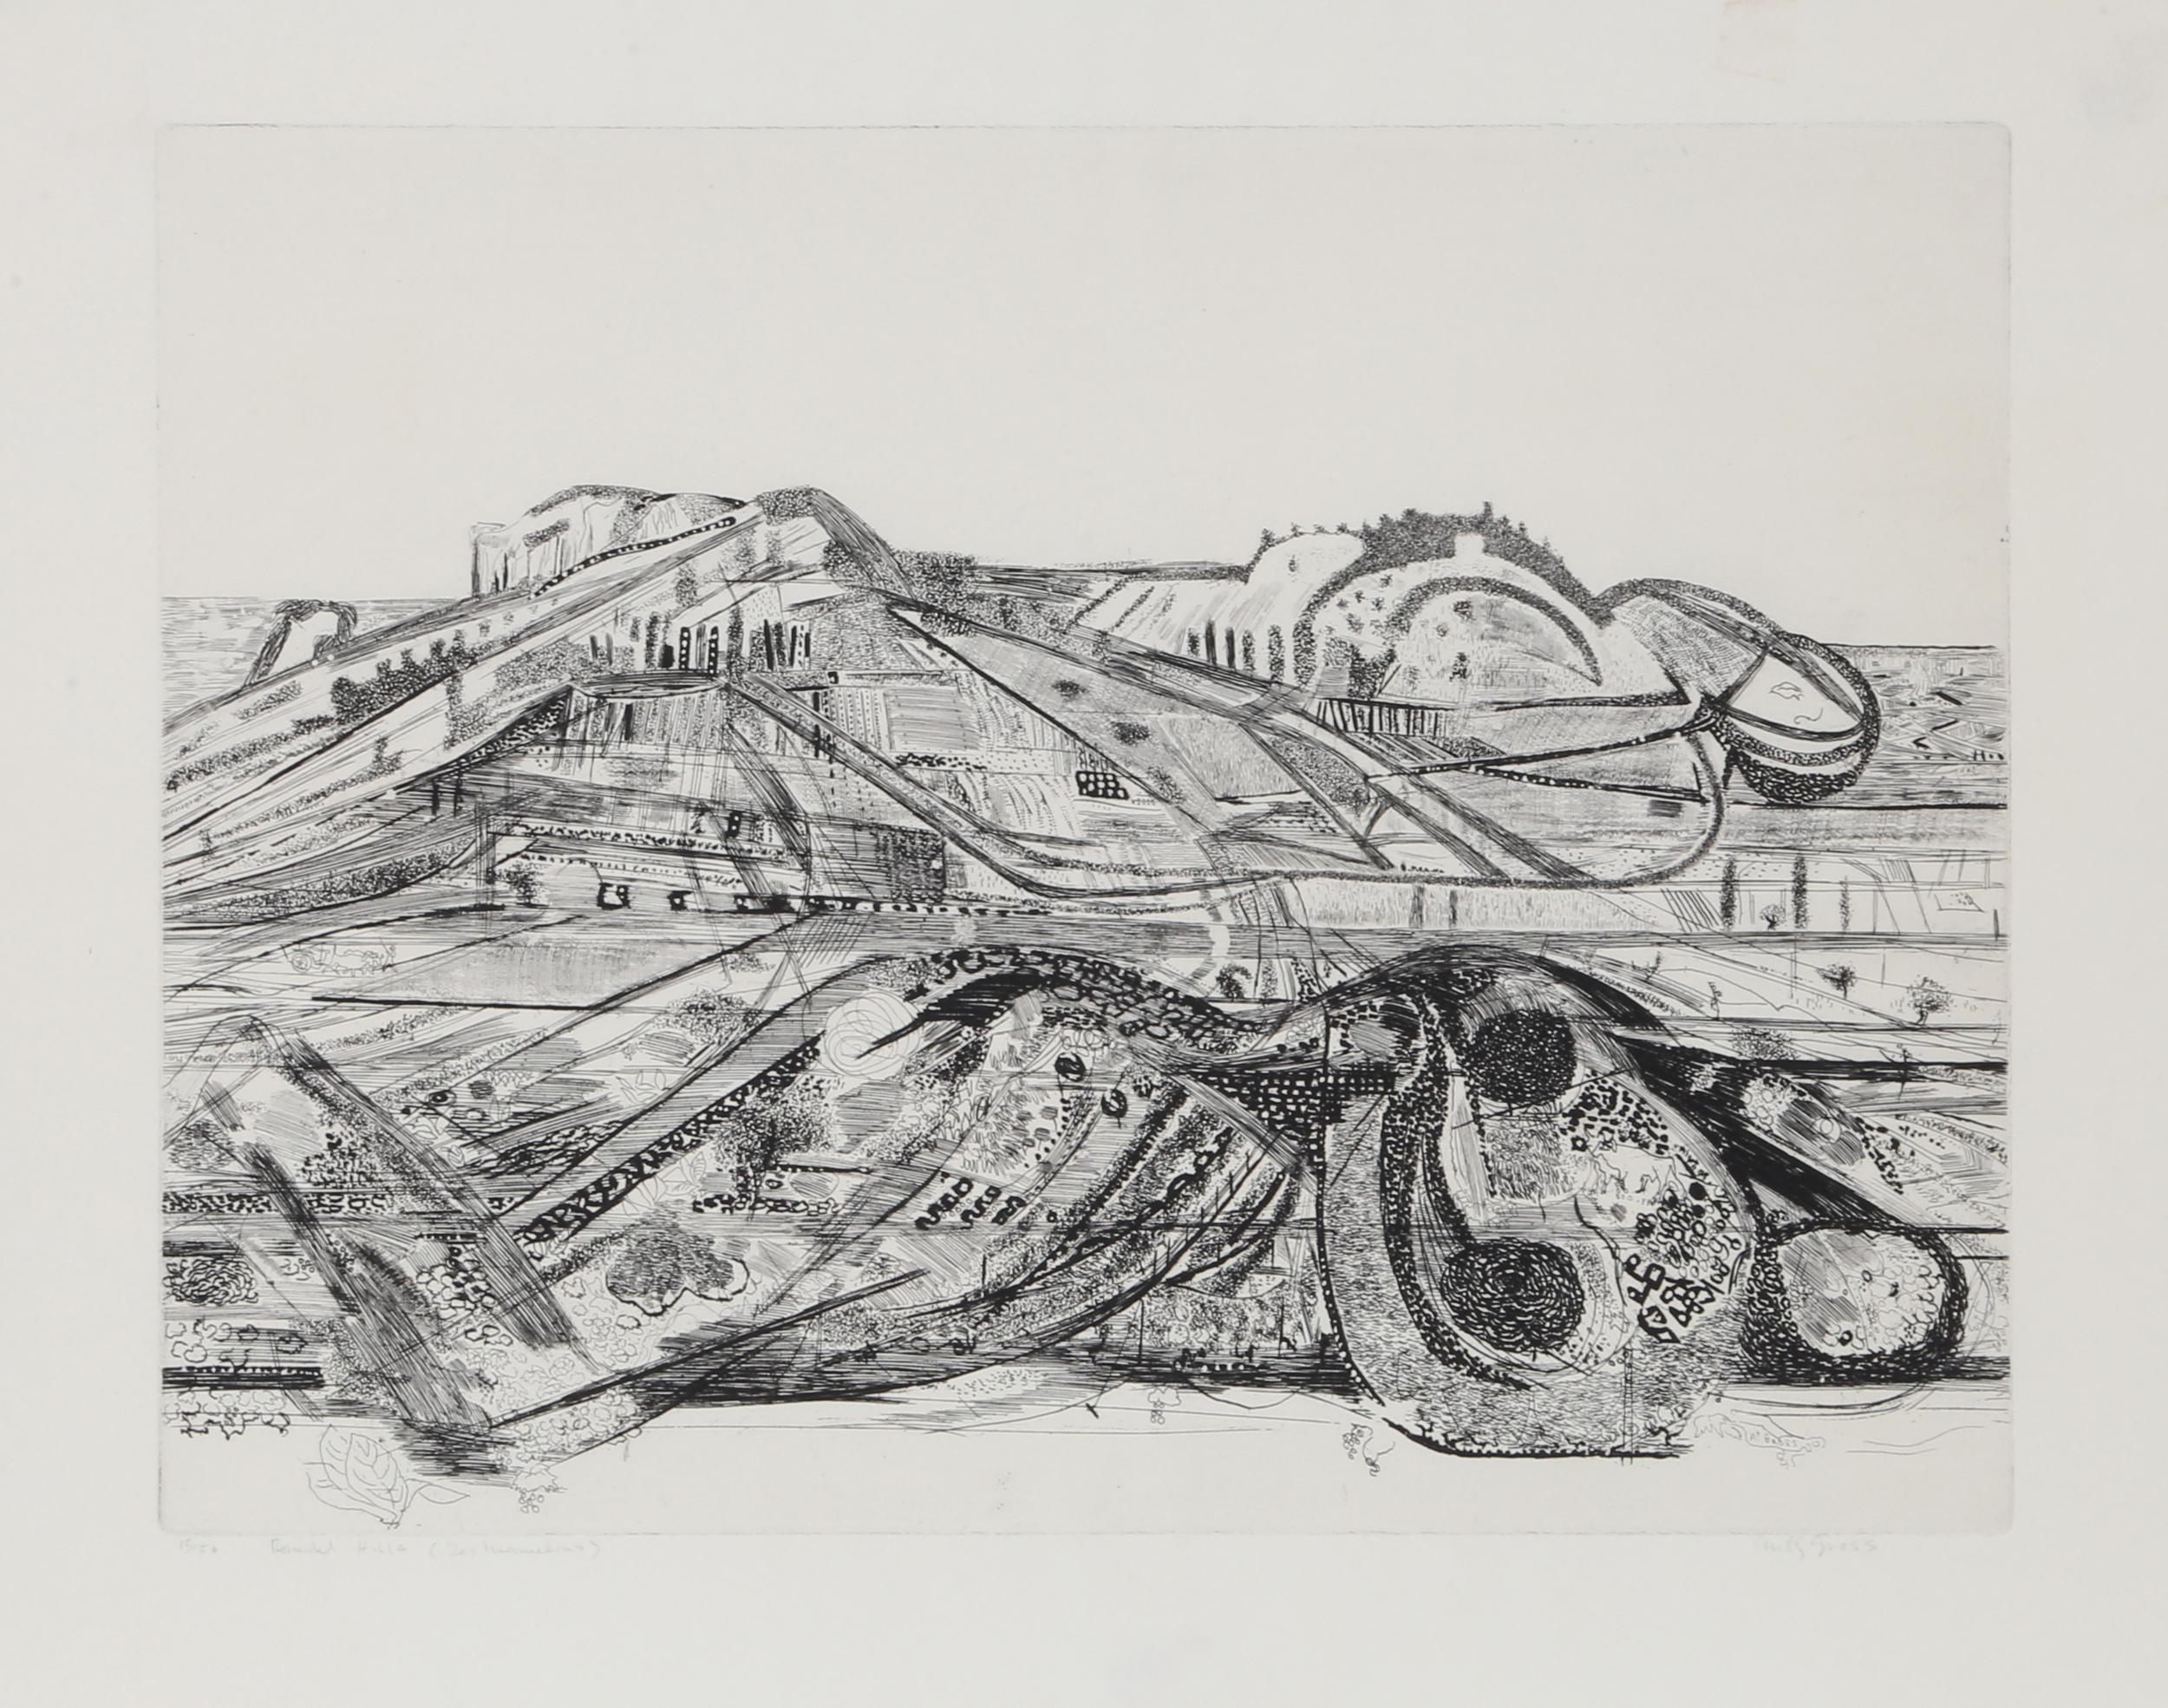 Anthony Gross, Rounded Hills (Les Mamelons), Intaglio Etching